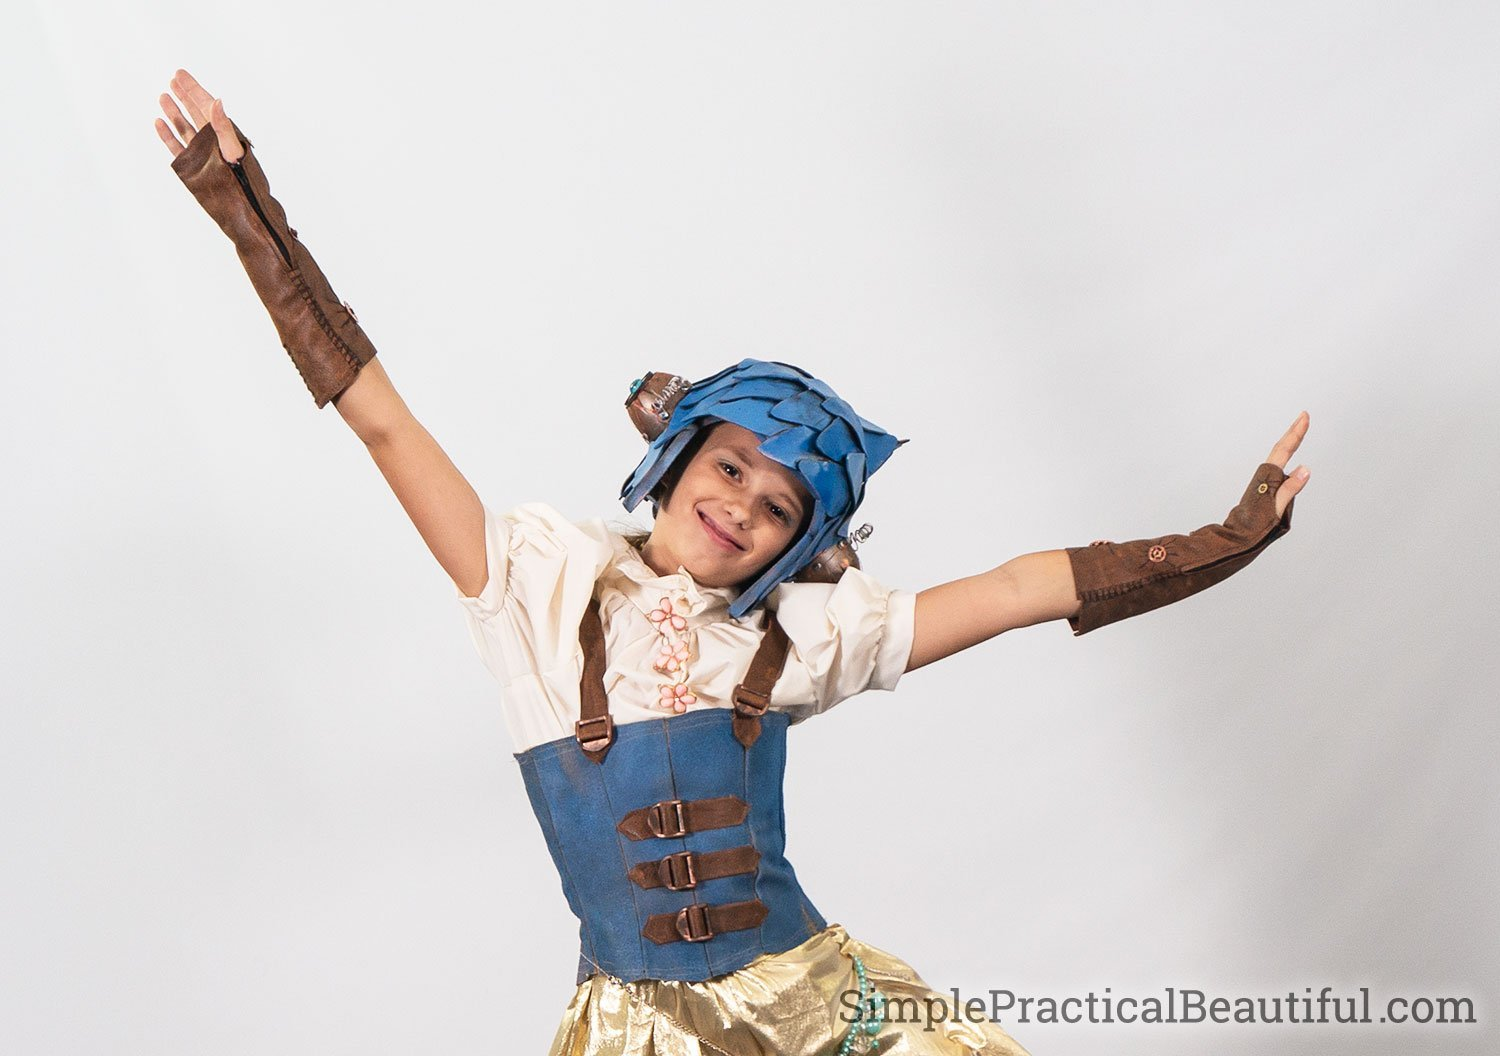 A steampunk cosplay costume with fingerless leather gloves